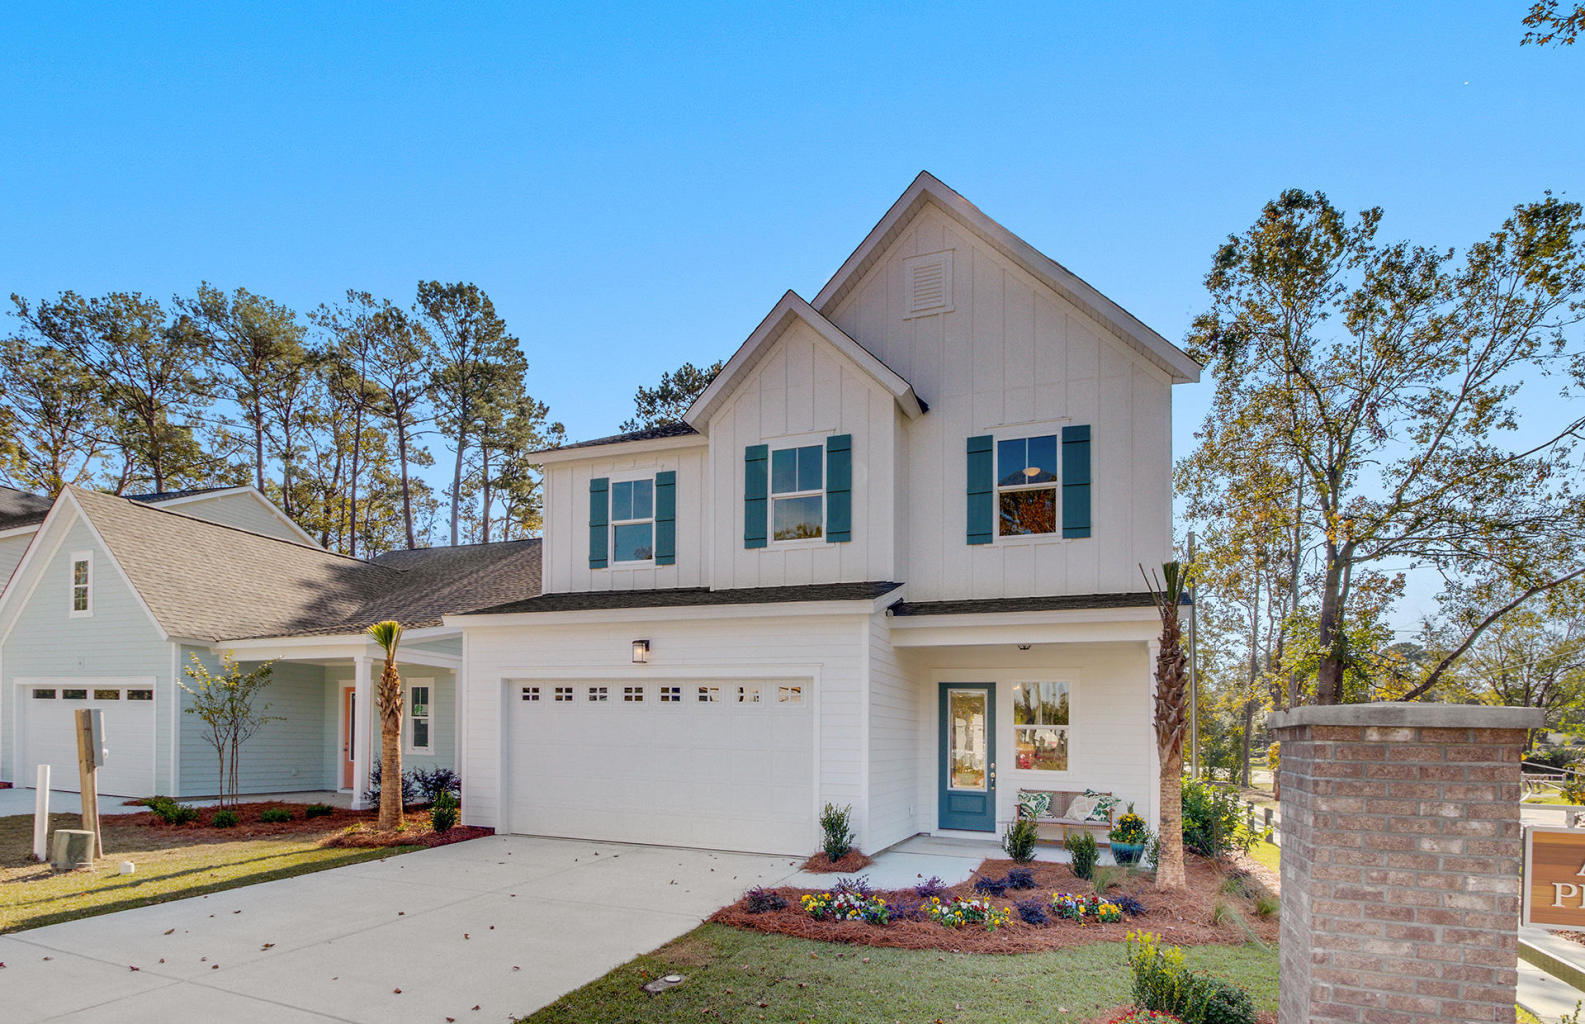 3025 Evening Tide Drive Hanahan, SC 29410